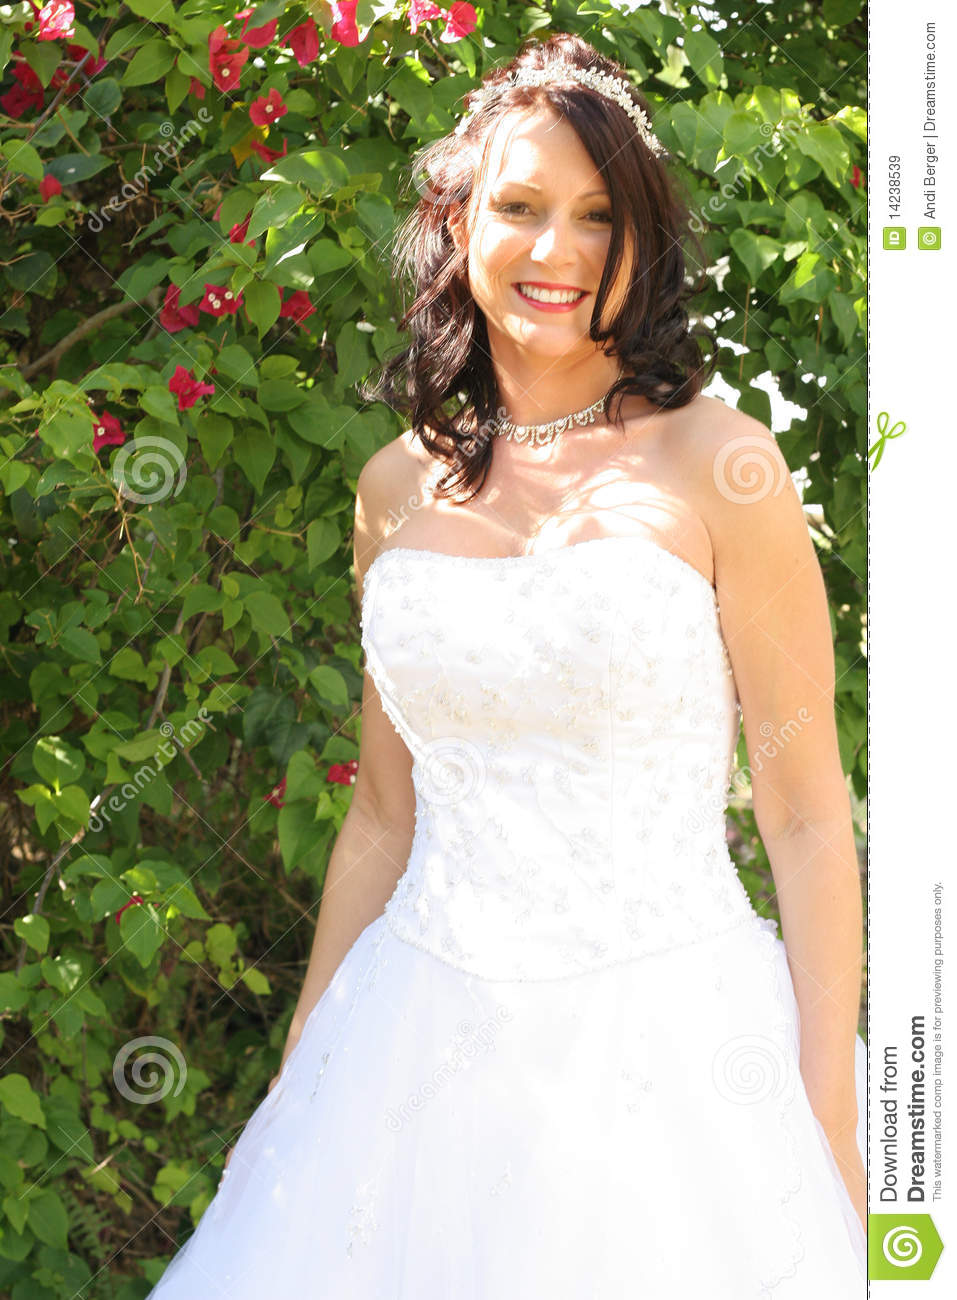 Beautiful bride outside in front of flowers